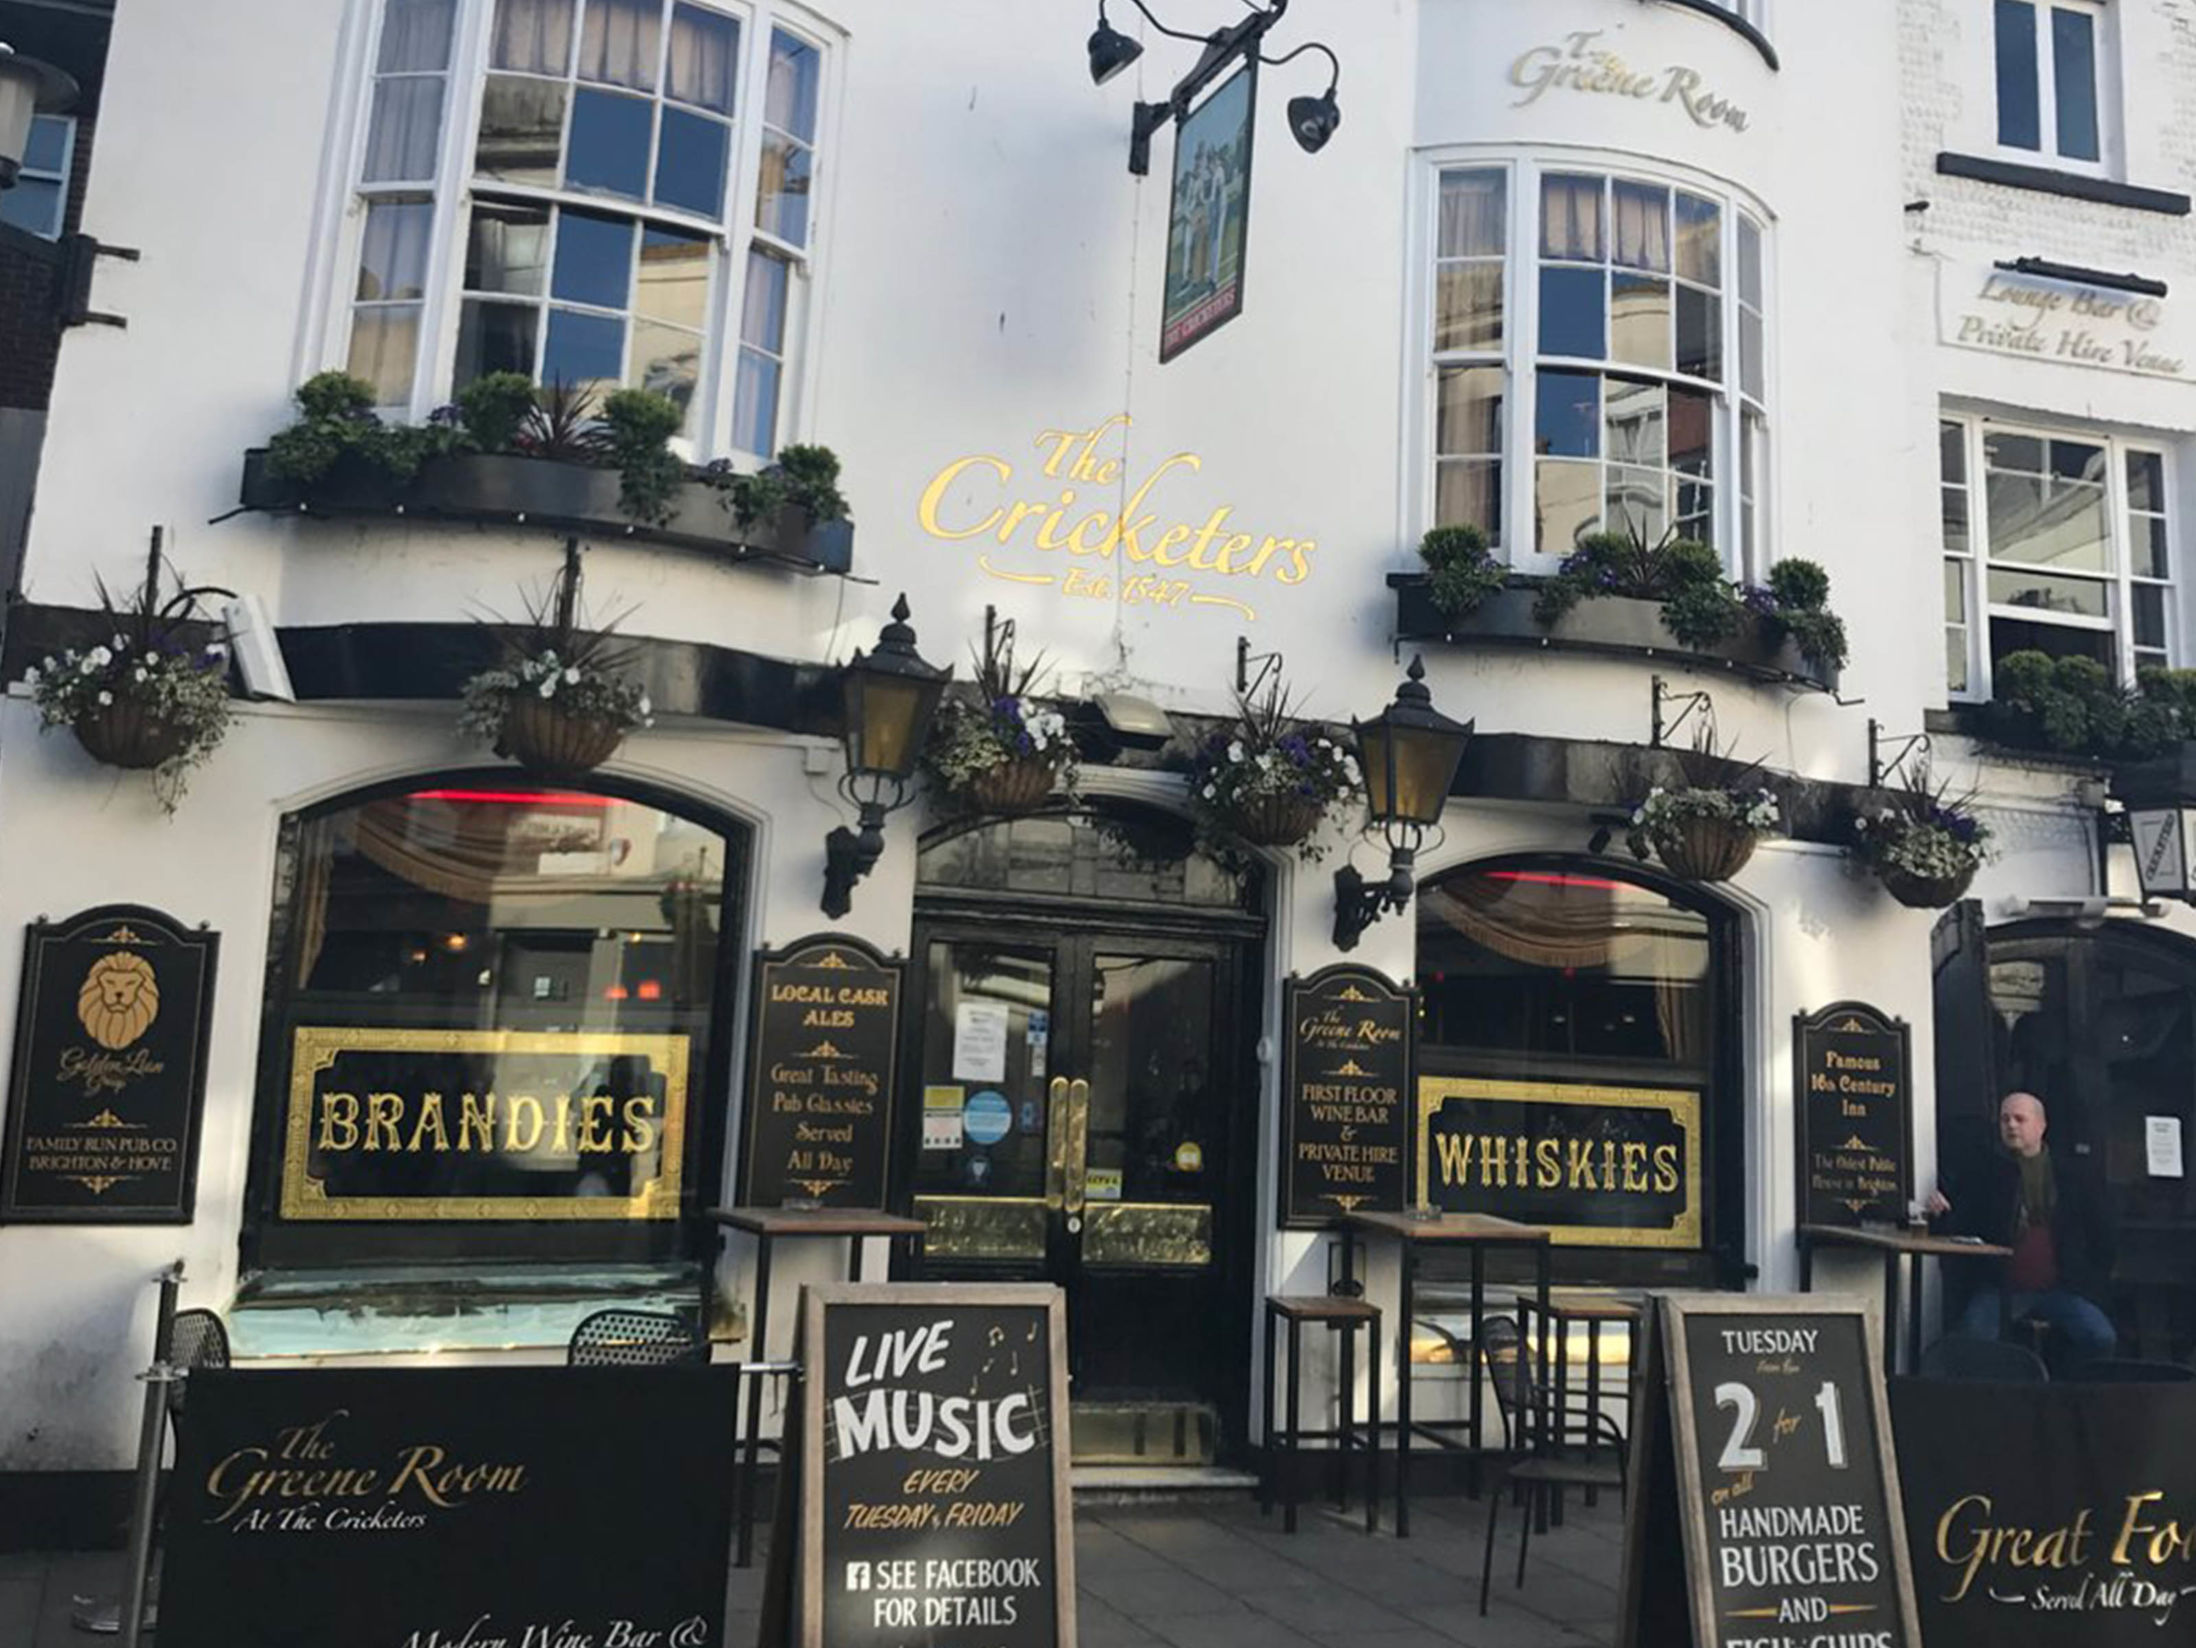 Best Pubs in Brighton - The Cricketers